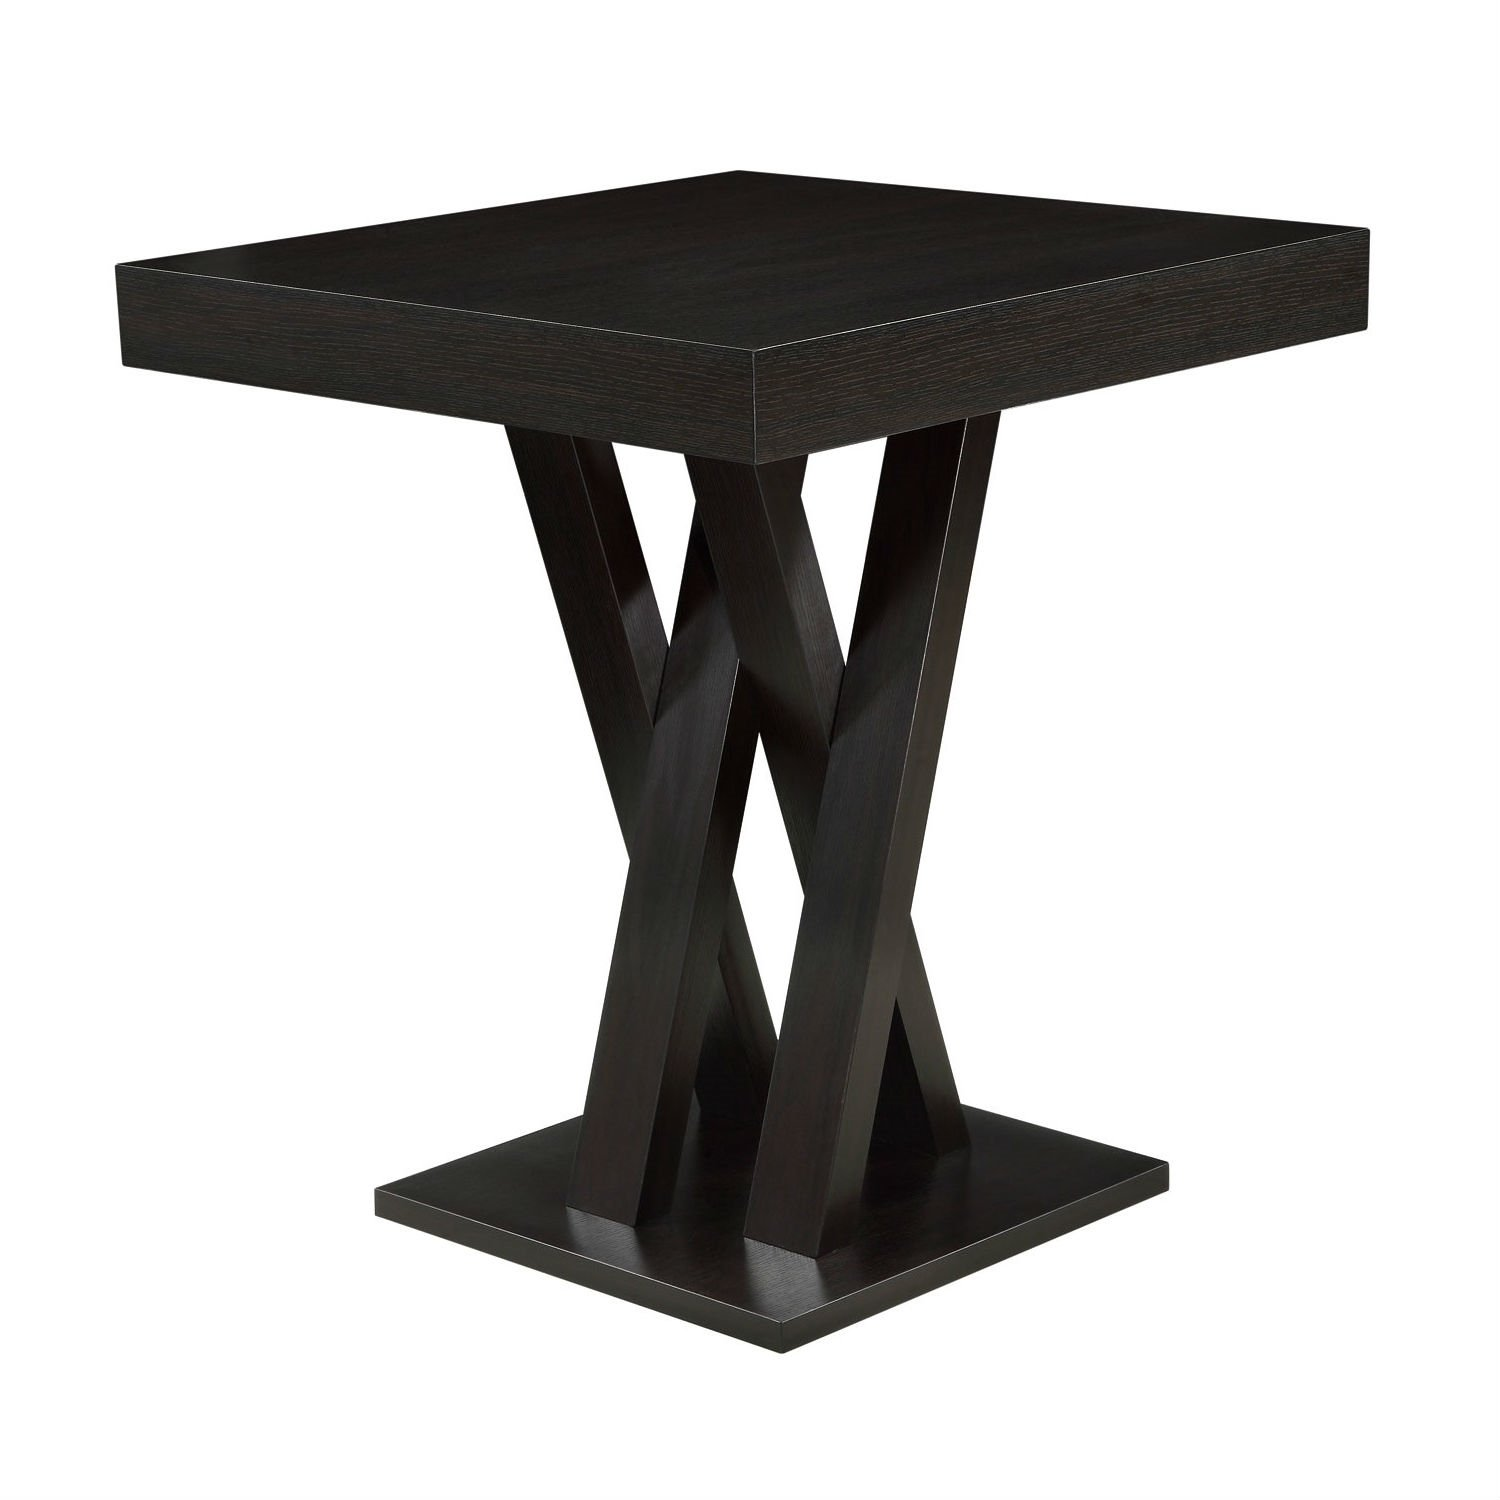 Modern 40 Inch High Square Dining Table In Dark Cappuccino Finish Wooden Bar Table Pub Table Dining Table In Kitchen